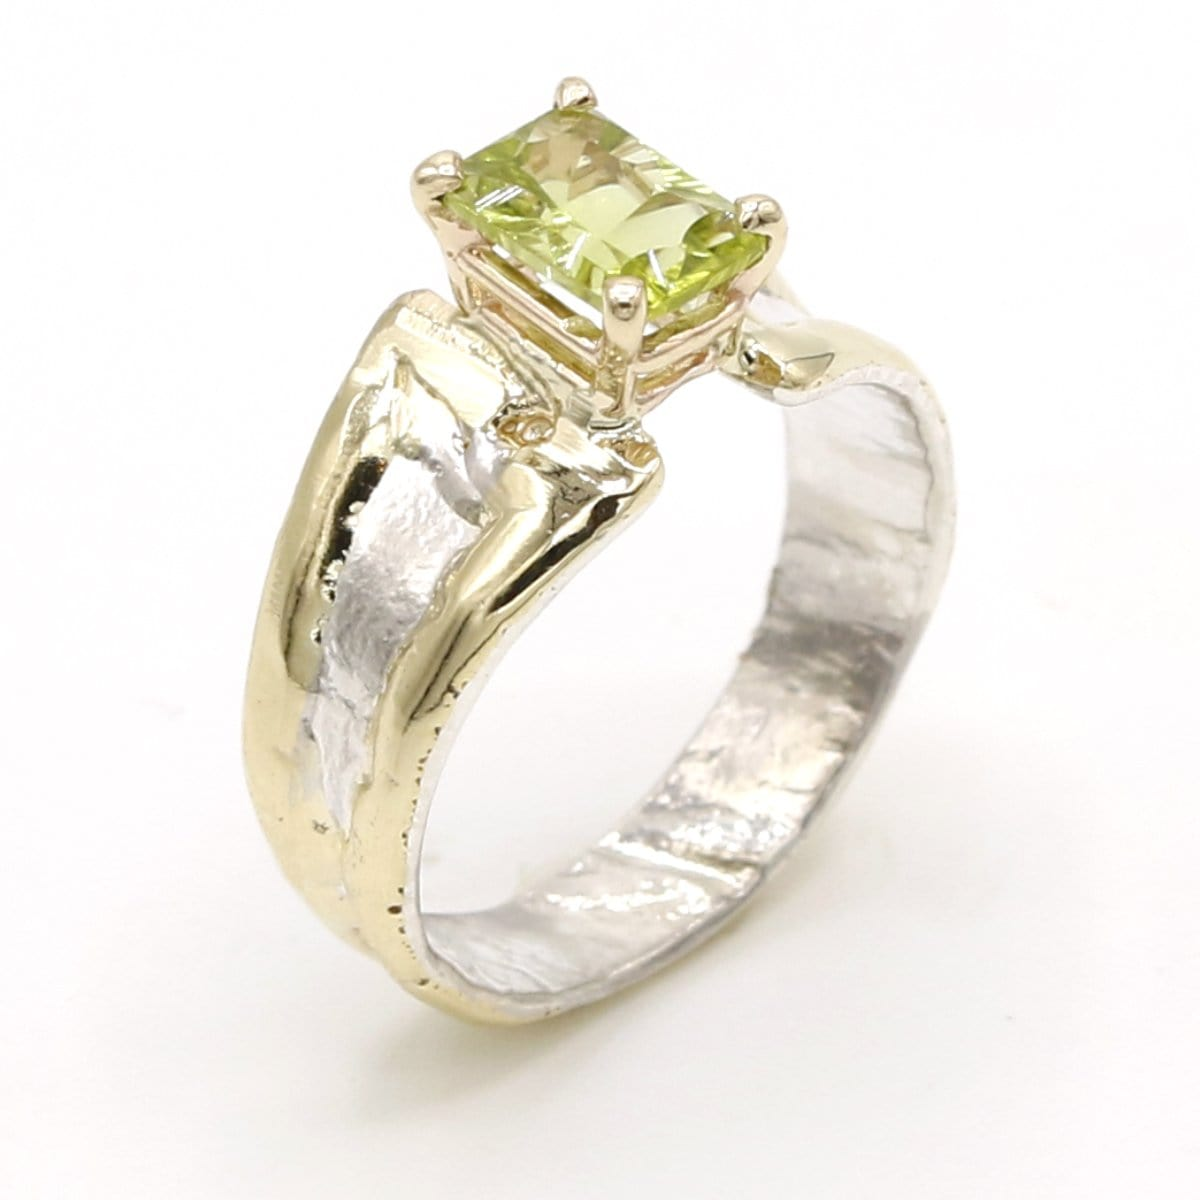 14K Gold & Crystalline Silver Peridot Ring - 37400